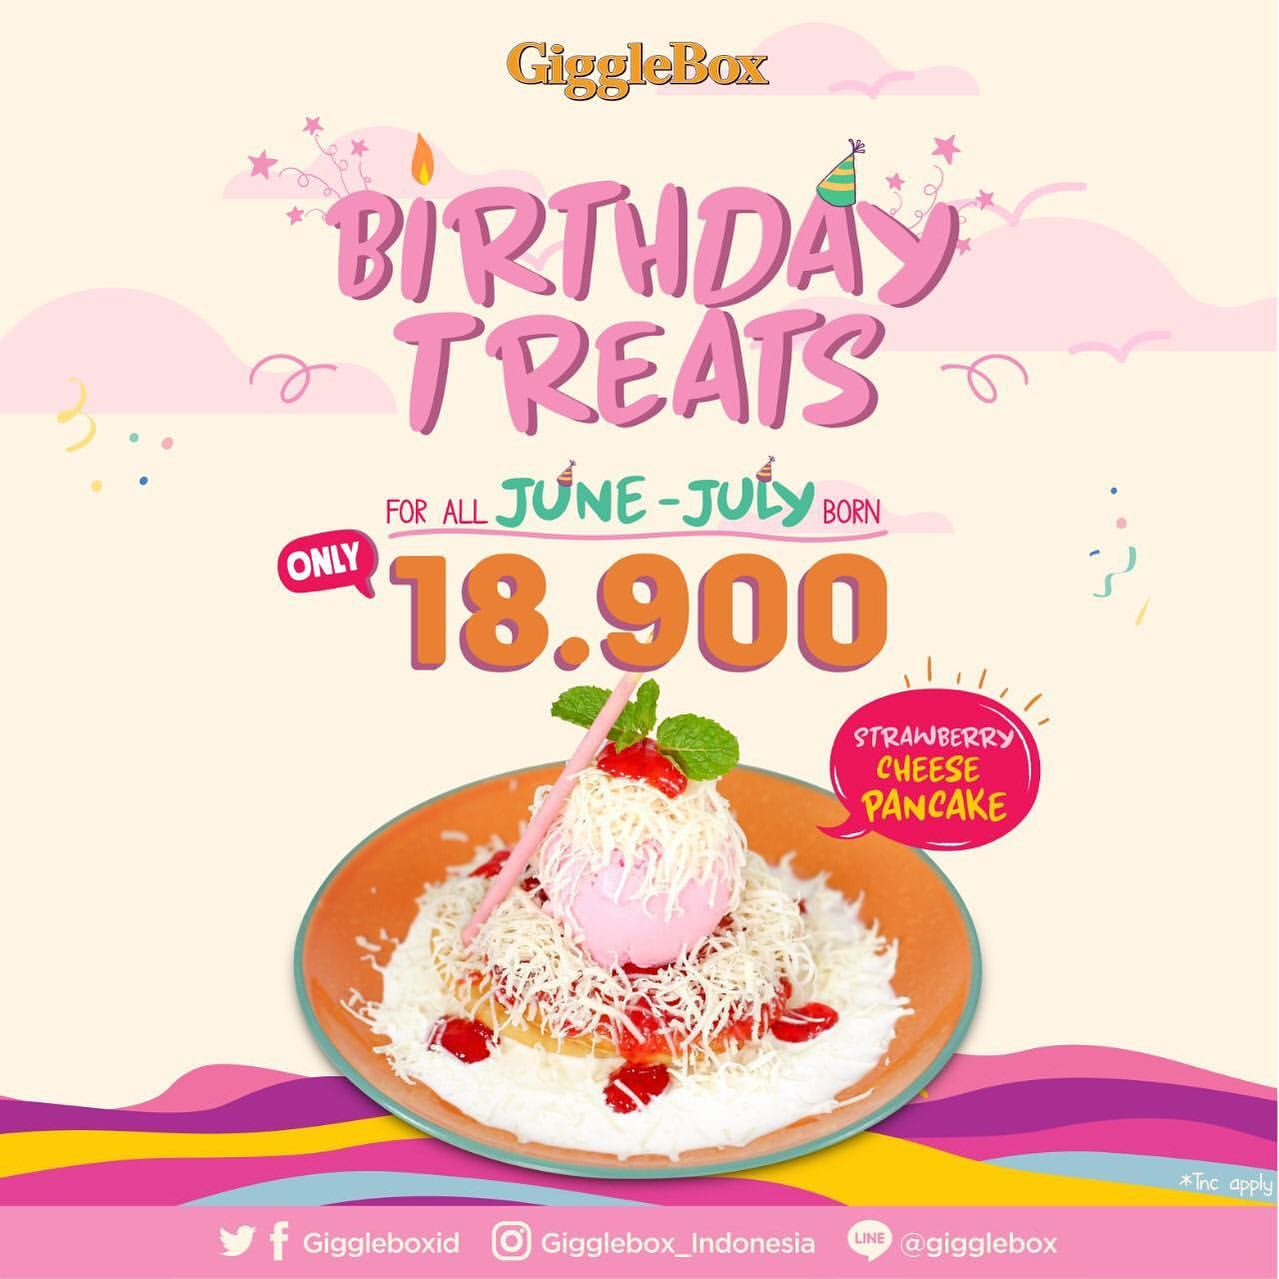 GIGGLE BOX Birthday Treats Promo Strawberry Cheese Pancake only Rp.18.900